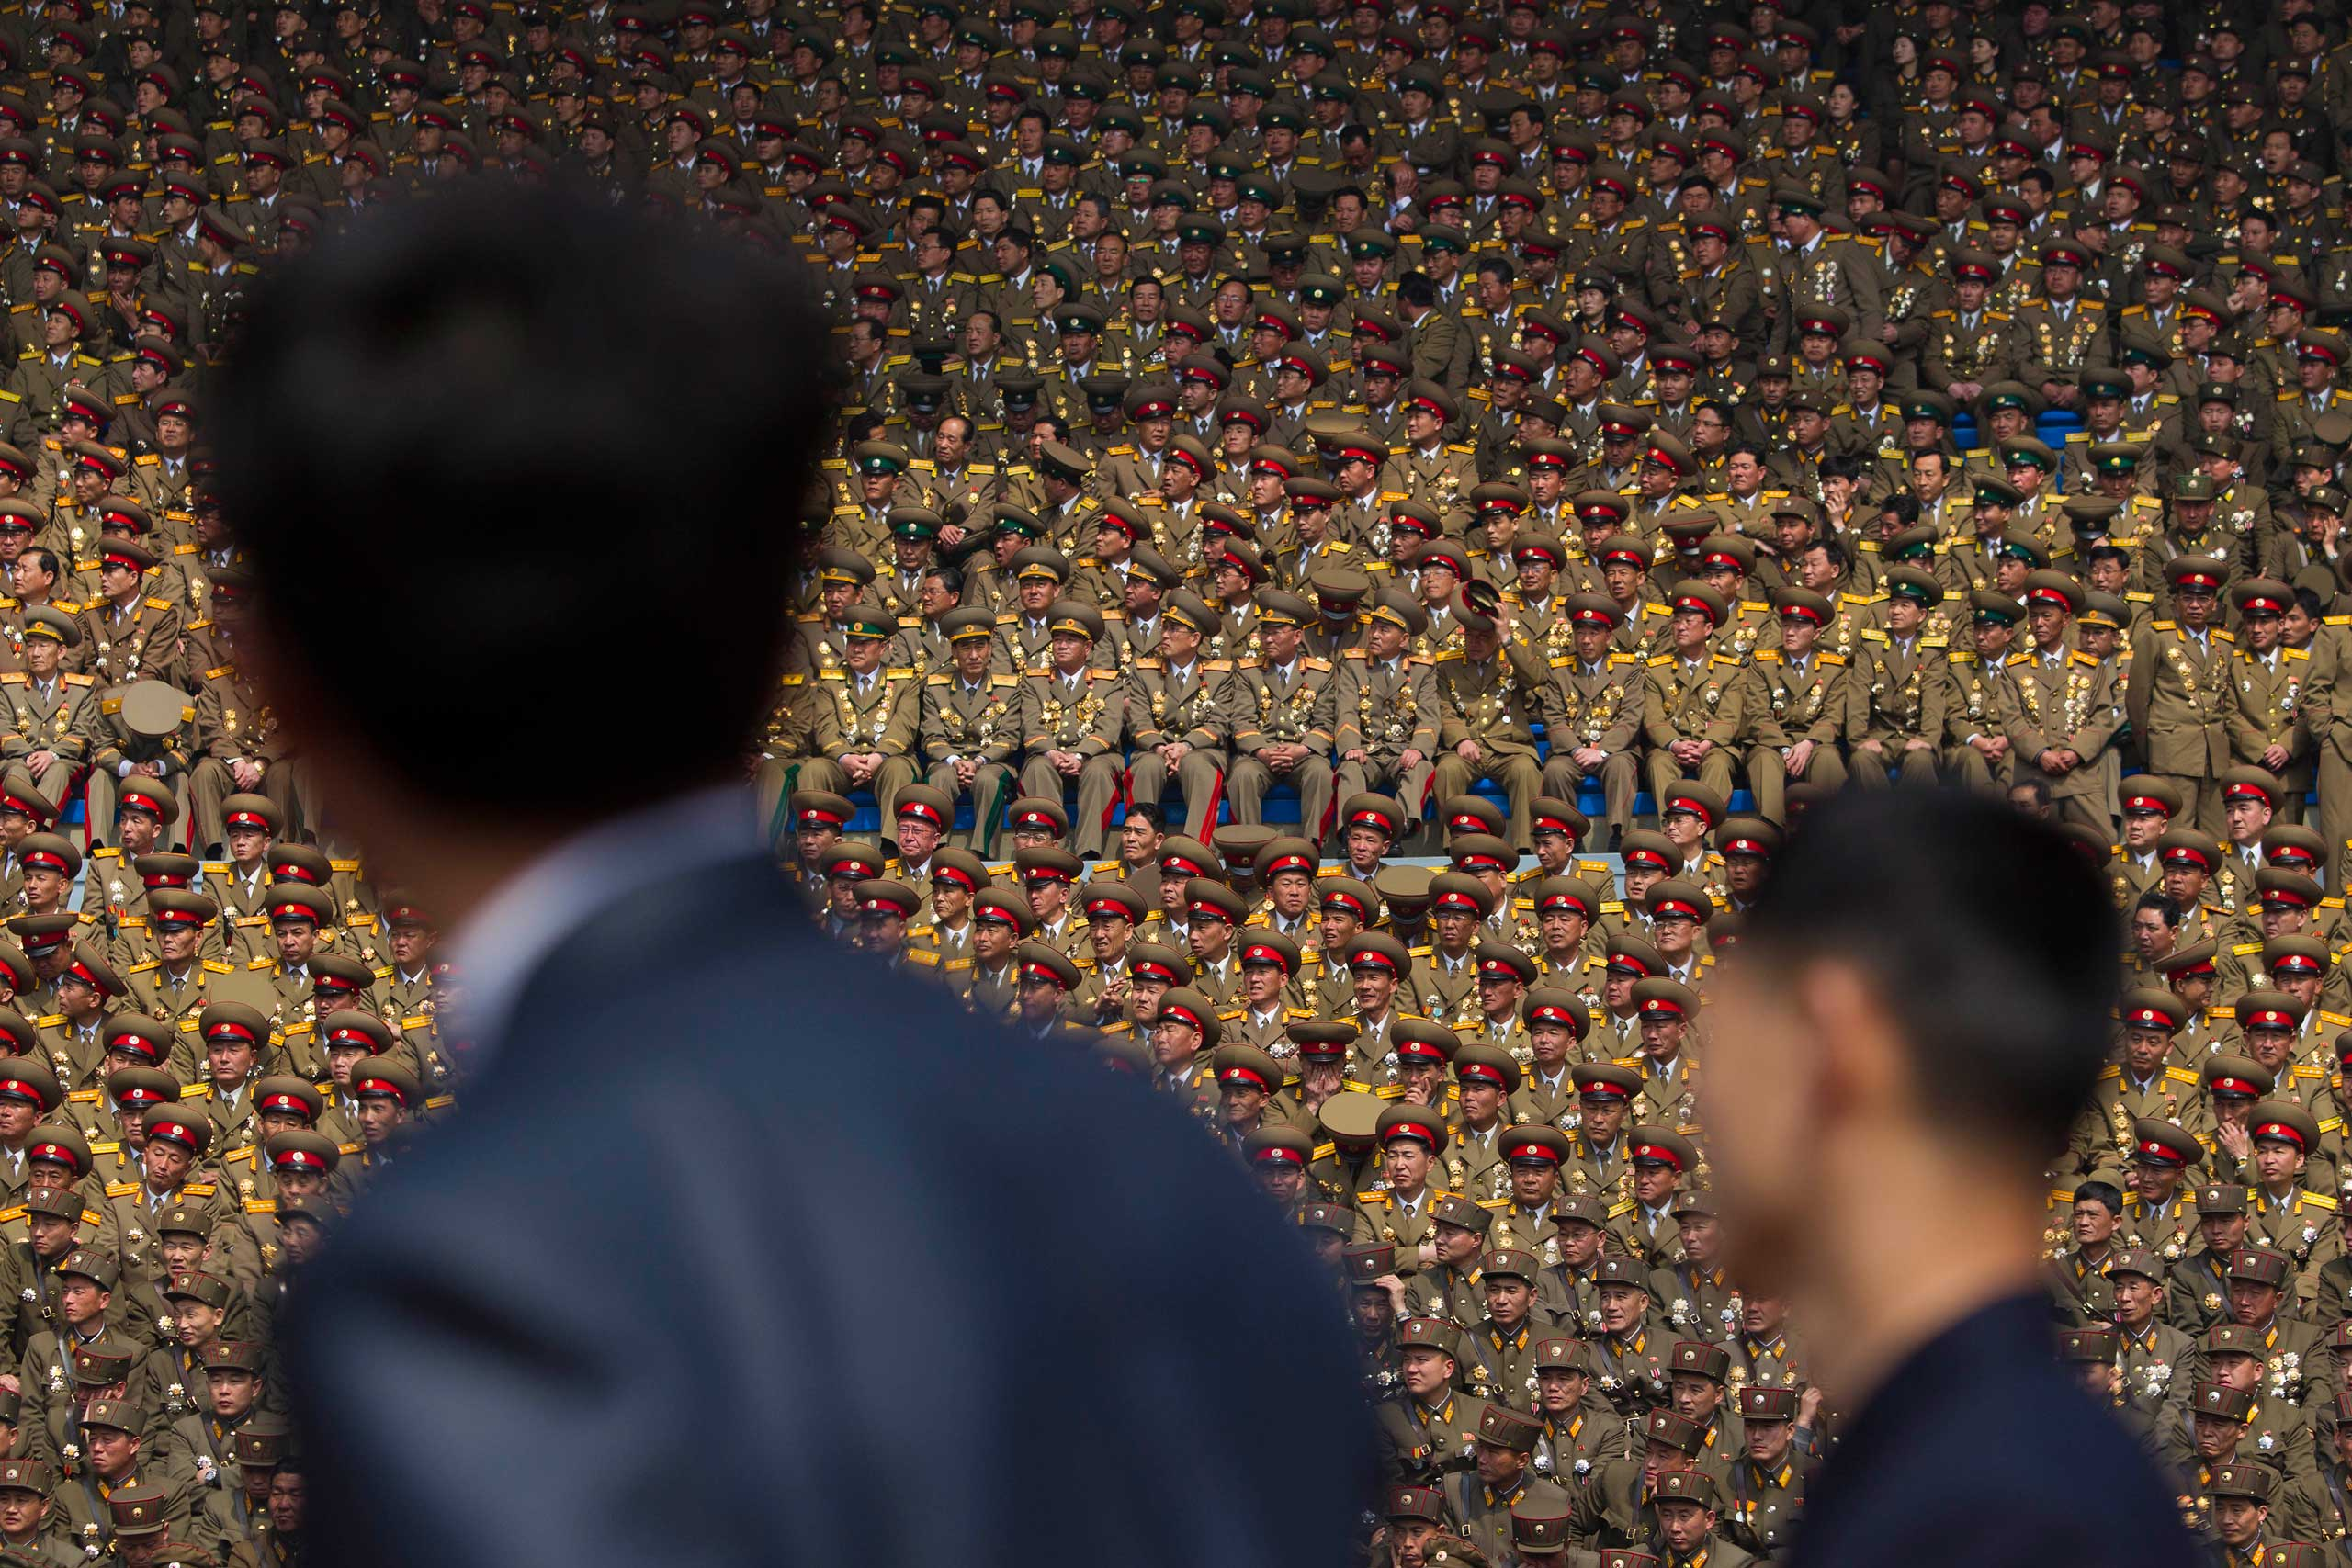 April 15, 2012. Two North Korean officials look up at a crowd of military members seated in a stadium in Pyongyang during a mass meeting called by the Central Committee of North Korea's ruling party.